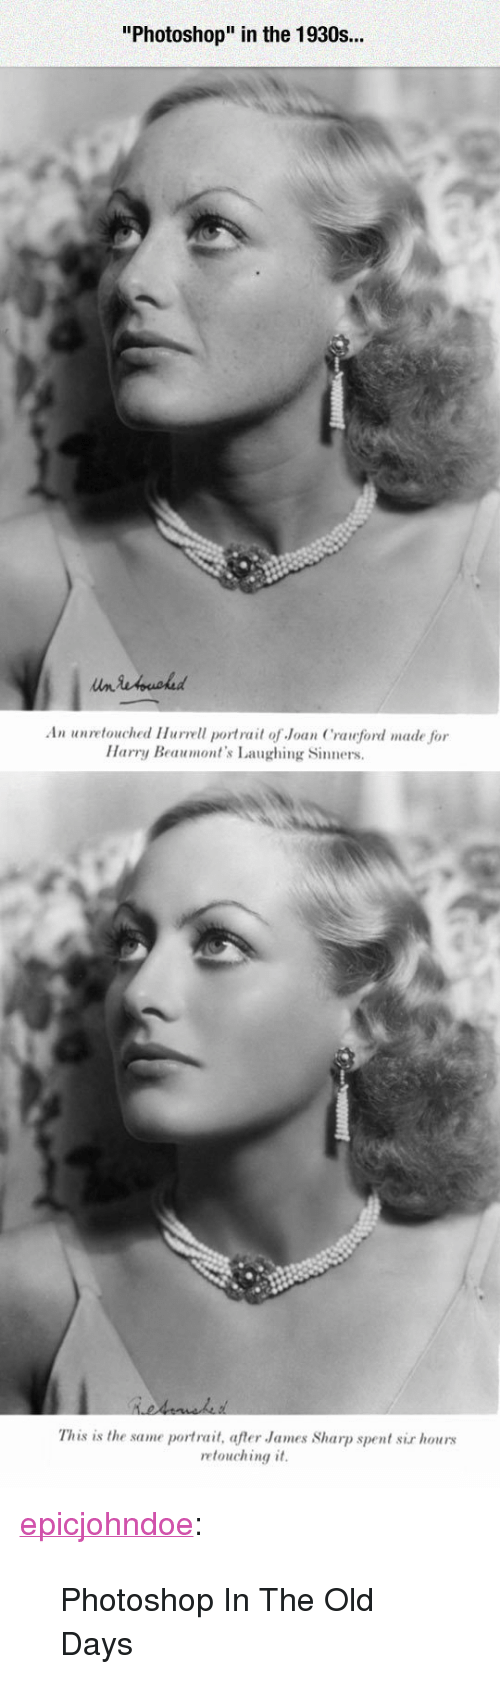 "Photoshop, Tumblr, and Blog: ""Photoshop"" in the 1930s...  An unretouched Hurvell portrait of Joan Crauford made for  Harry Beaumont's Laughing Sinners  This is the same portrait, after James Sharp spent sir hours  retouching it <p><a href=""https://epicjohndoe.tumblr.com/post/169478183219/photoshop-in-the-old-days"" class=""tumblr_blog"">epicjohndoe</a>:</p>  <blockquote><p>Photoshop In The Old Days</p></blockquote>"